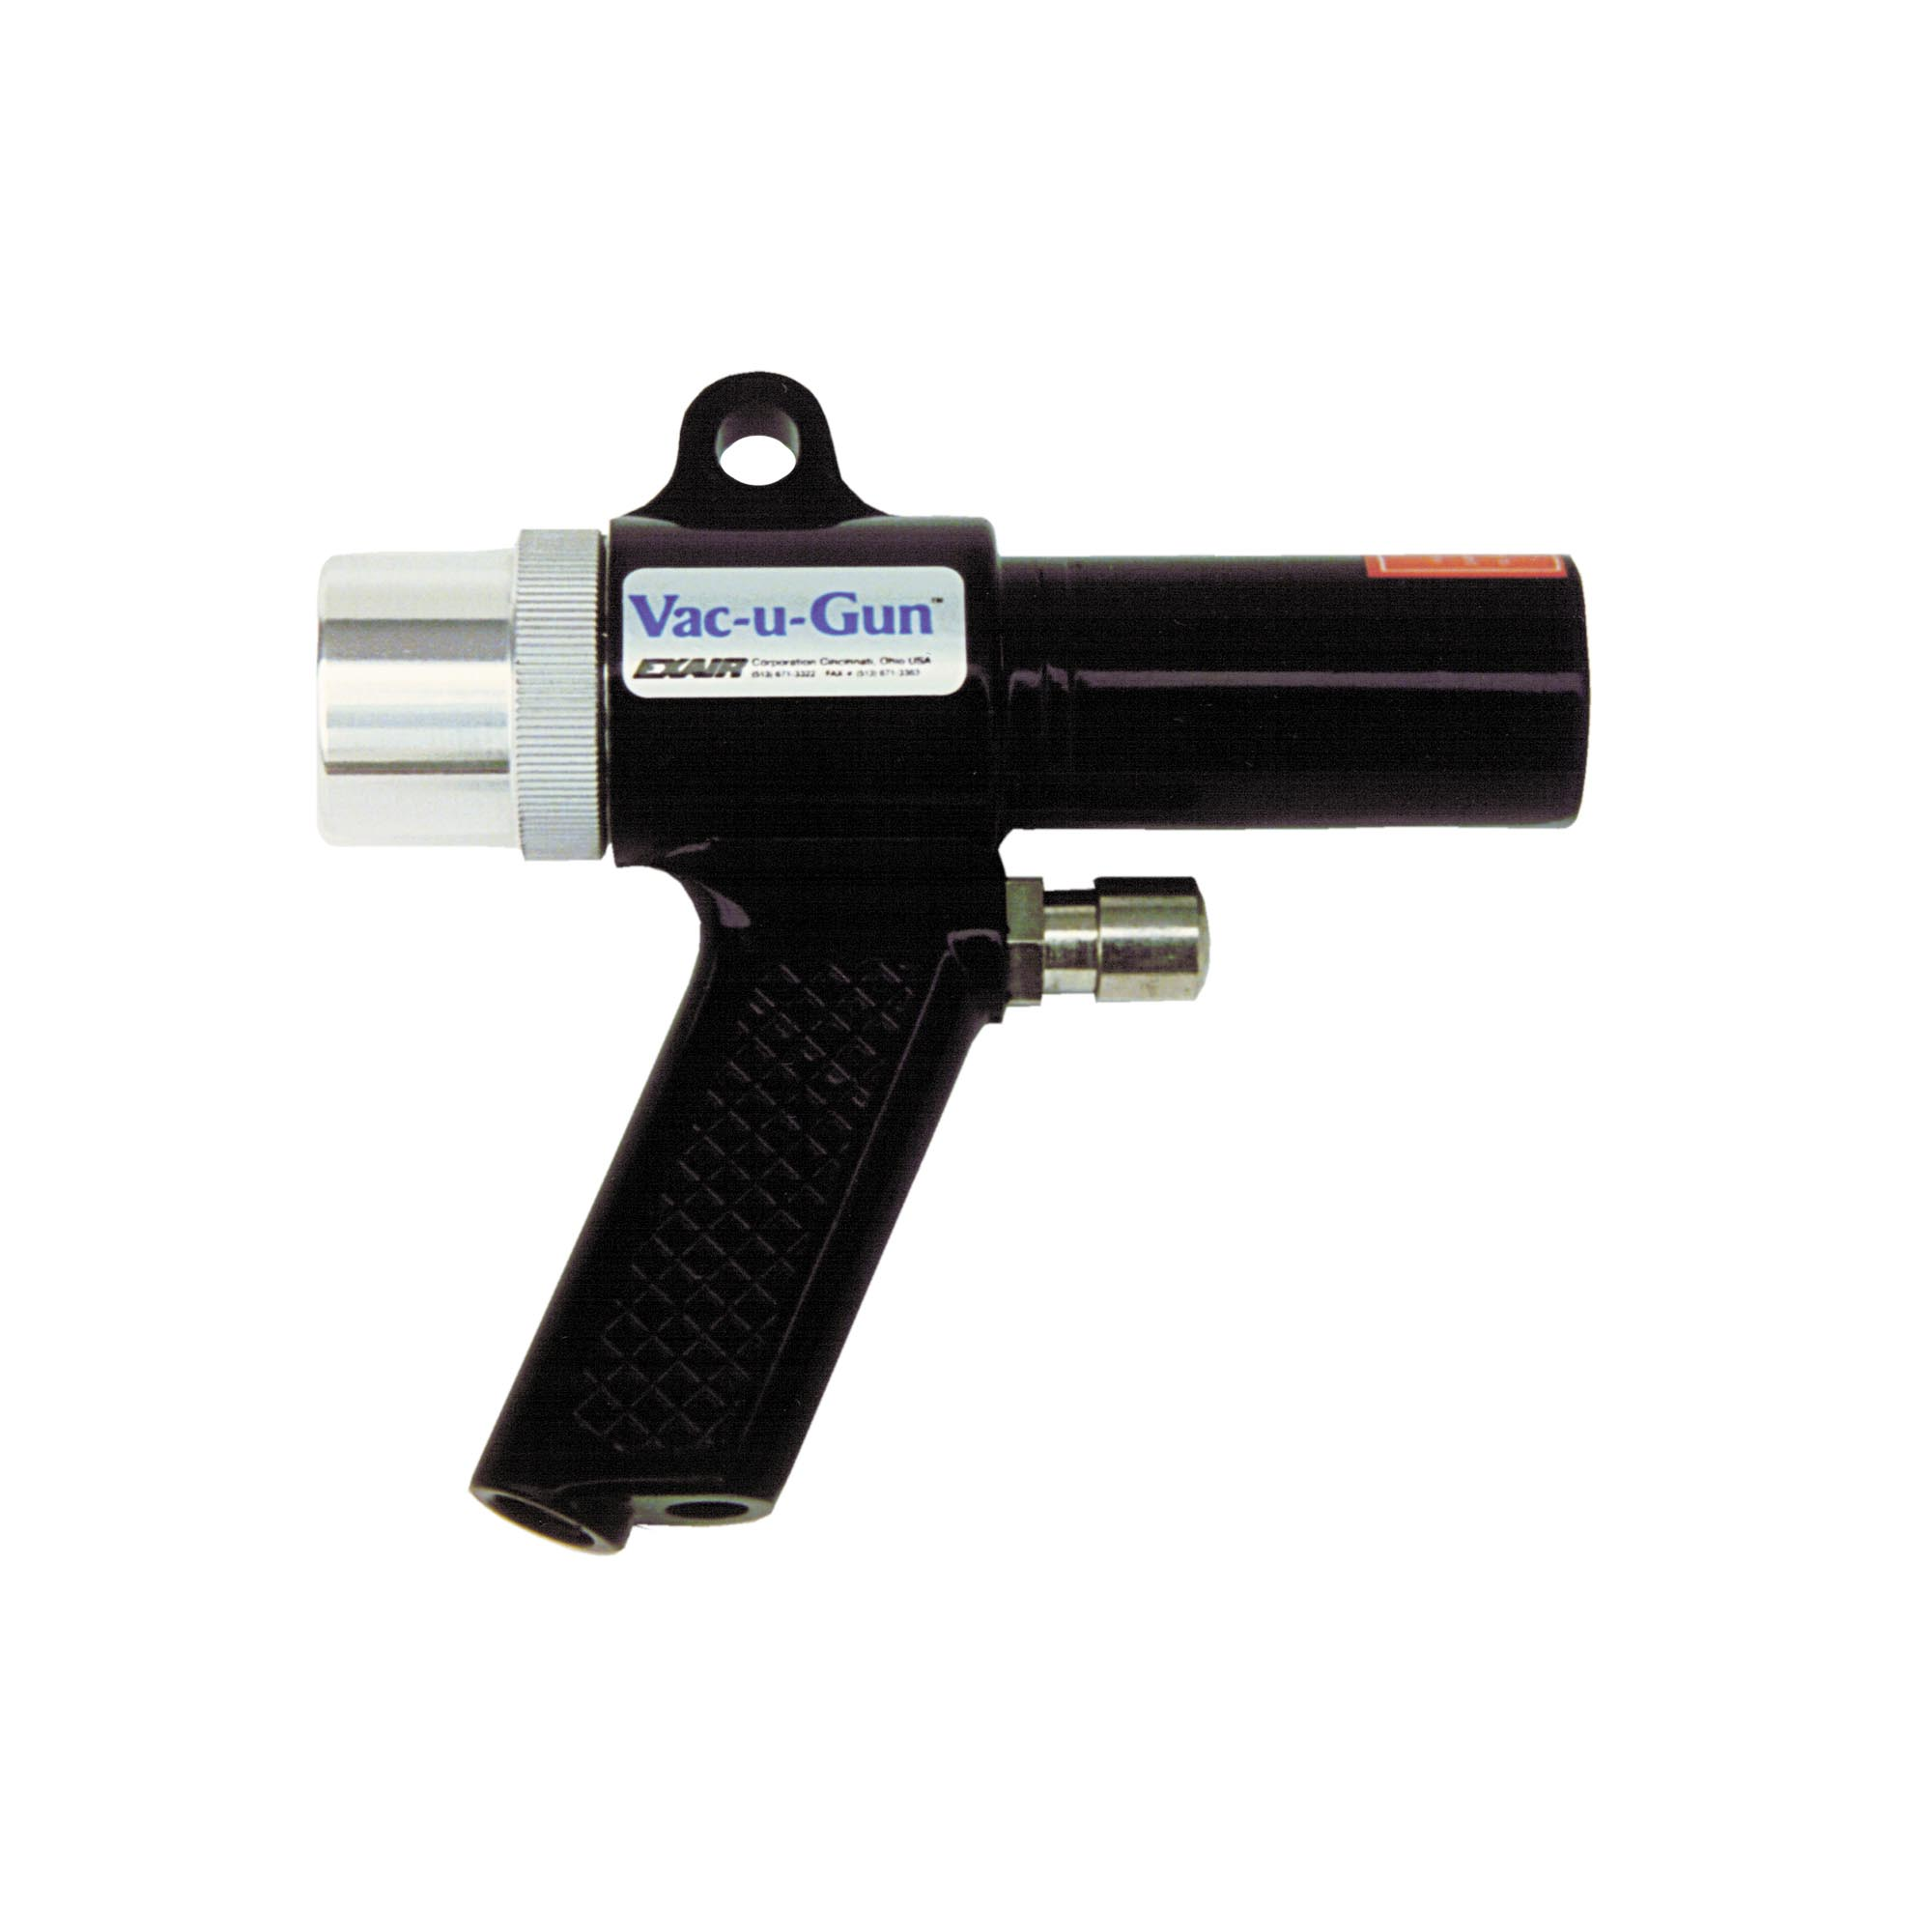 Model 6092 Vac-u-Gun only